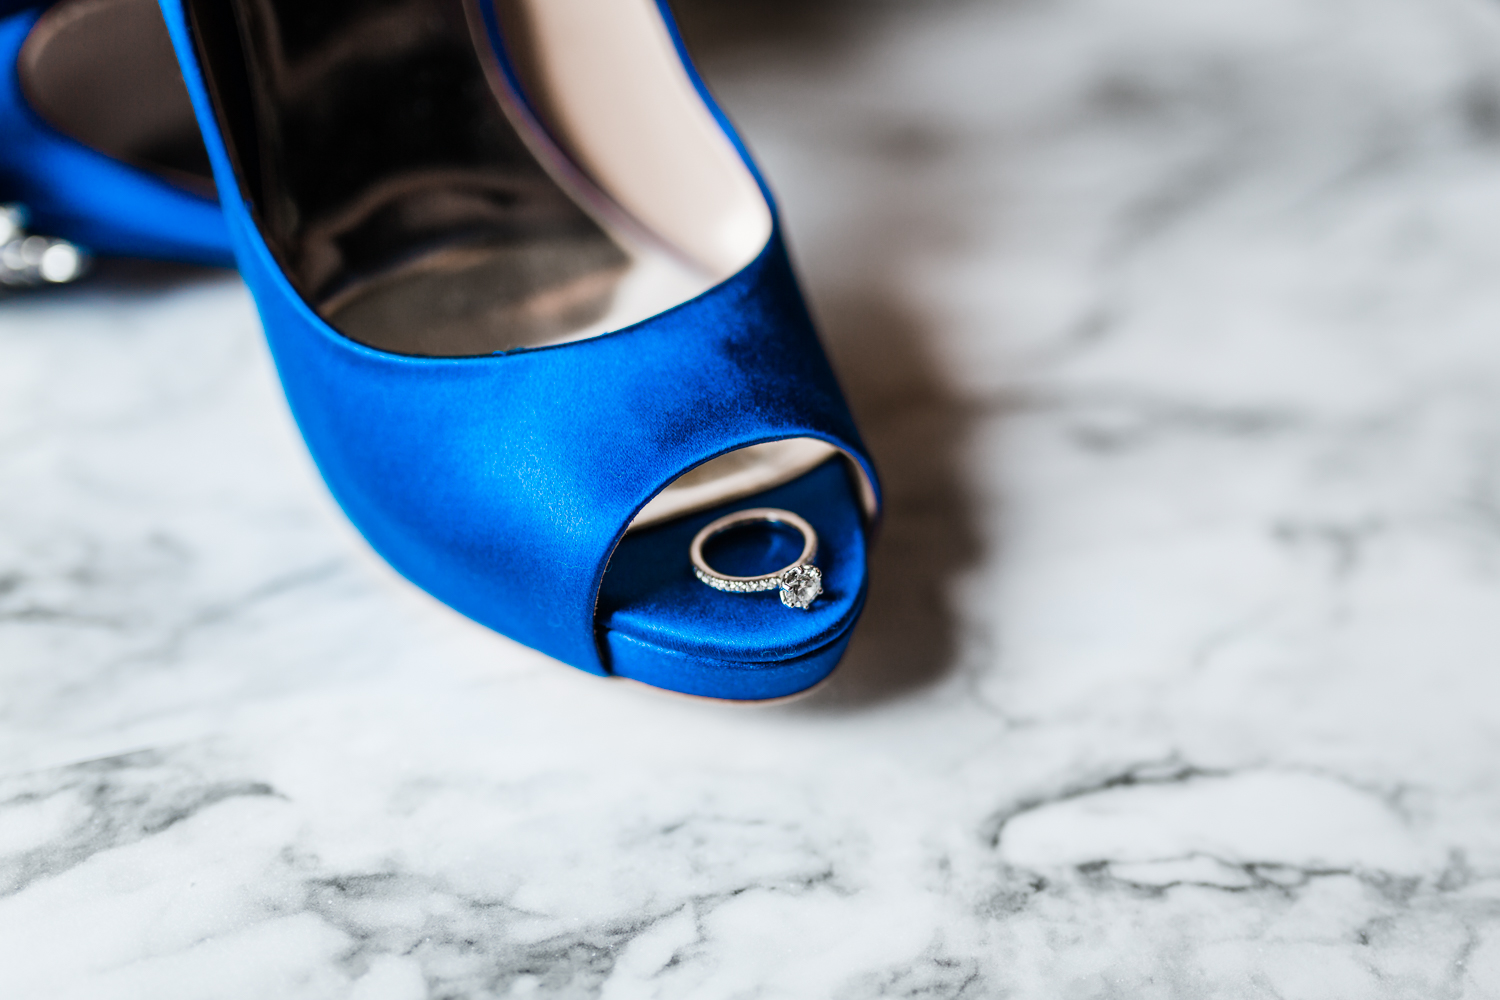 ring detail on badgley mischka shoes - elegant wedding venue in Maryland